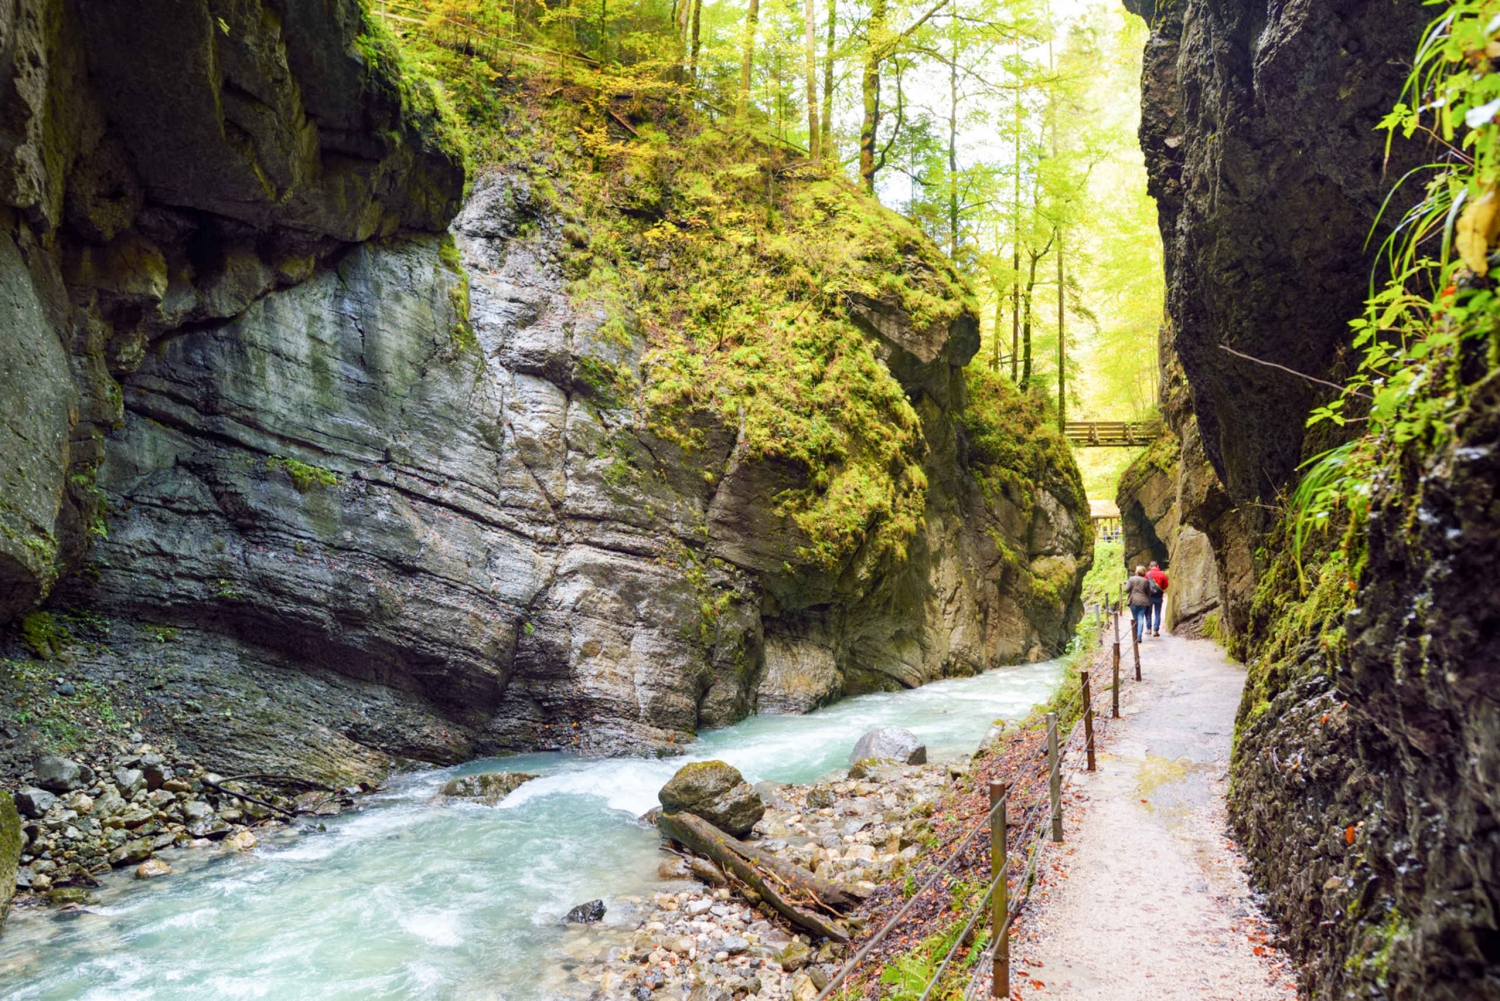 Partnachklamm Gorge Tour from Groups of 4 or More